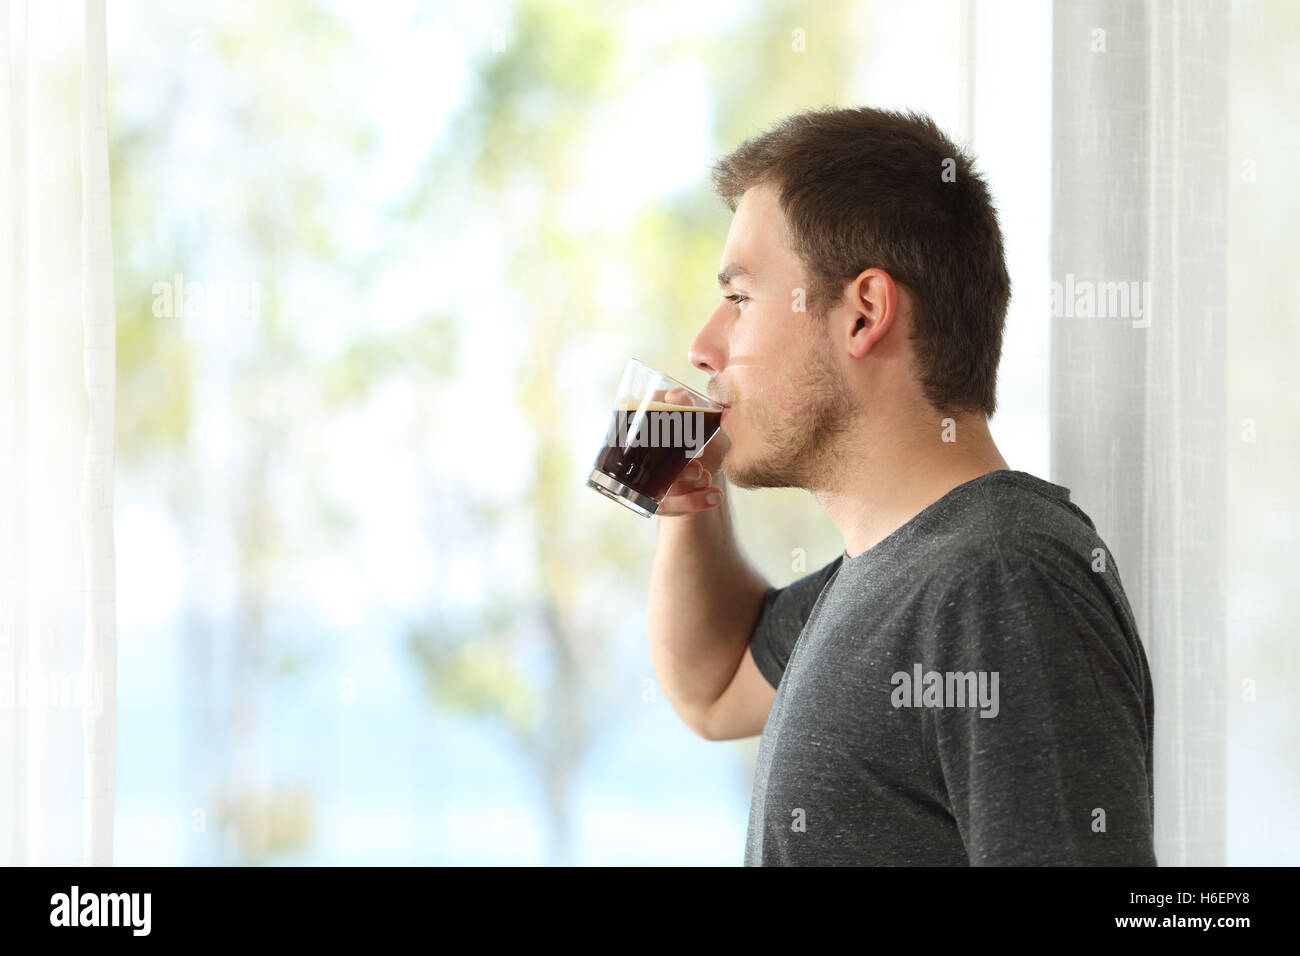 Side view of a man drinking coffee looking through the window of home or hotel - Stock Image